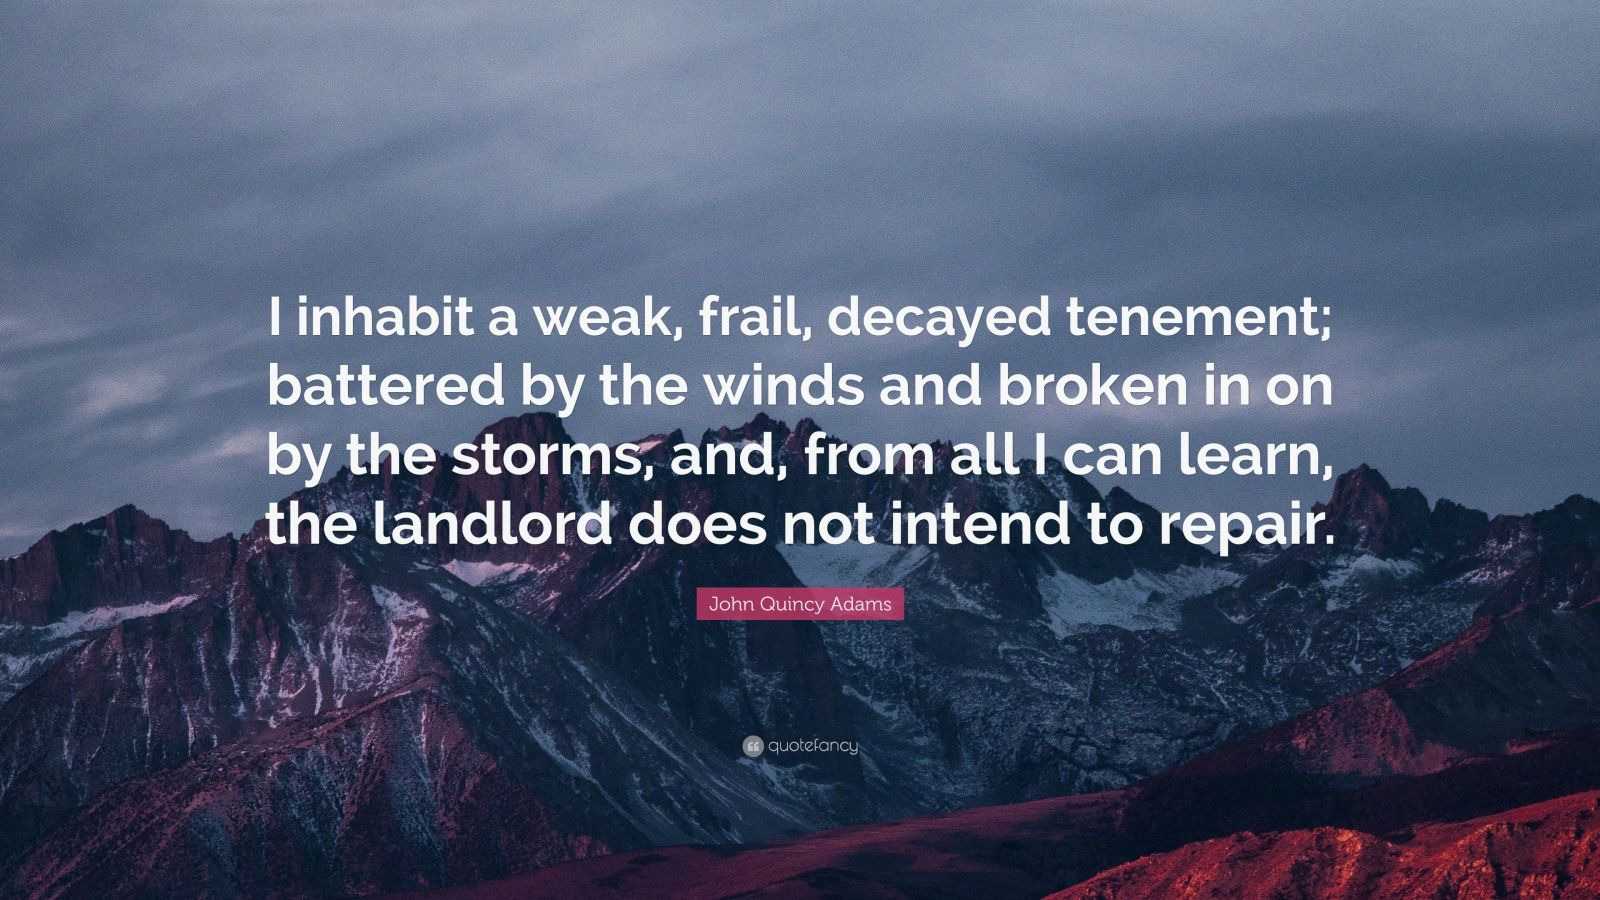 """John Quincy Adams Quote: """"I inhabit a weak, frail, decayed tenement; battered by the winds and broken in on by the storms, and, from all I can learn, the landlord does not intend to repair."""""""